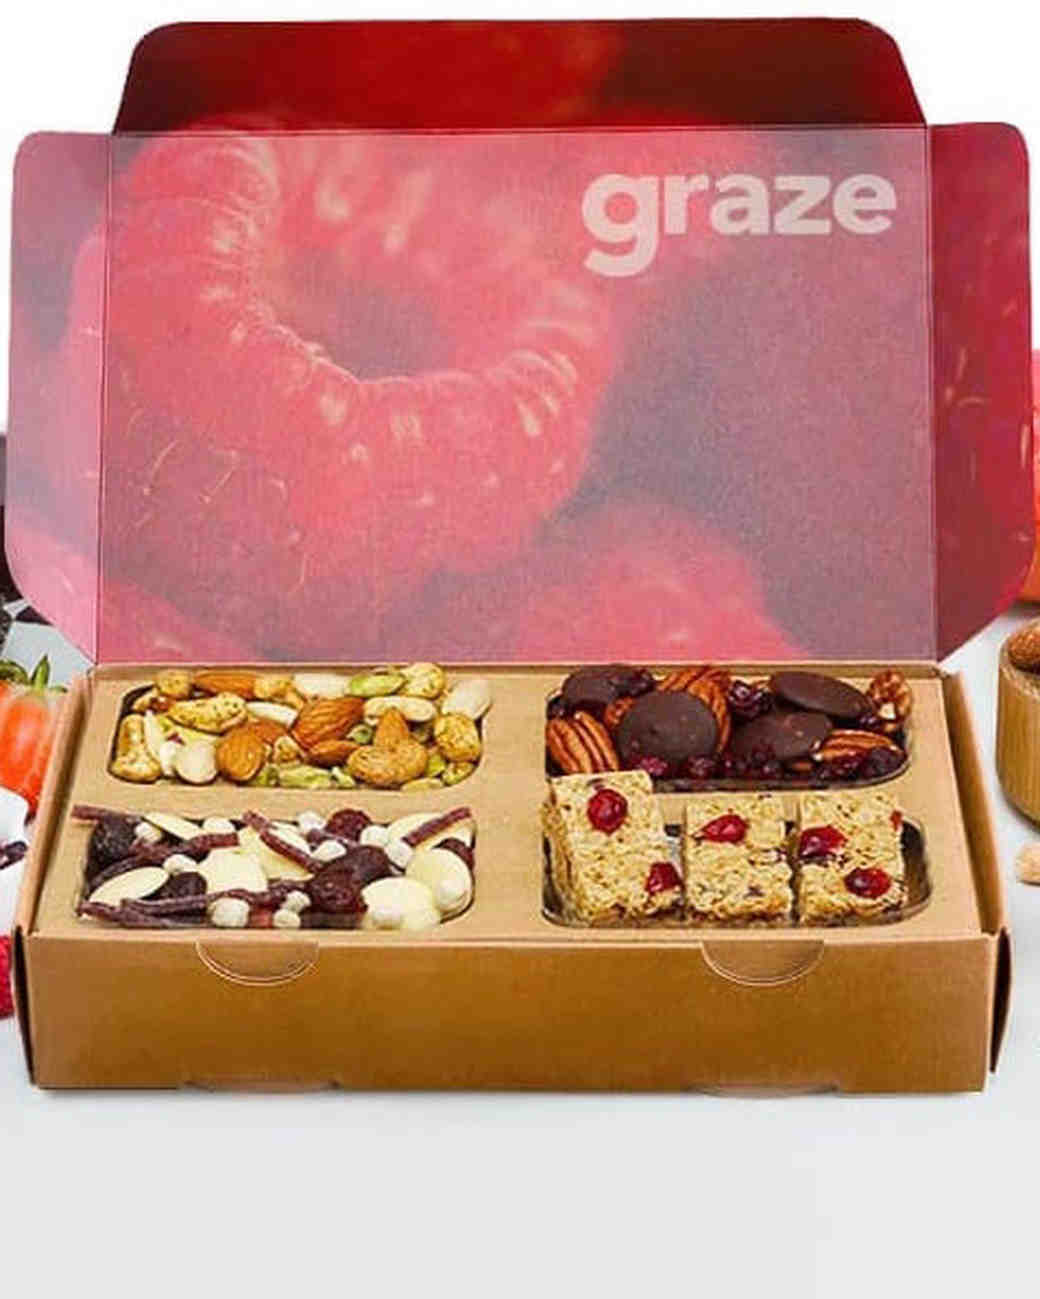 subscription-services-gift-graze-0516.jpg